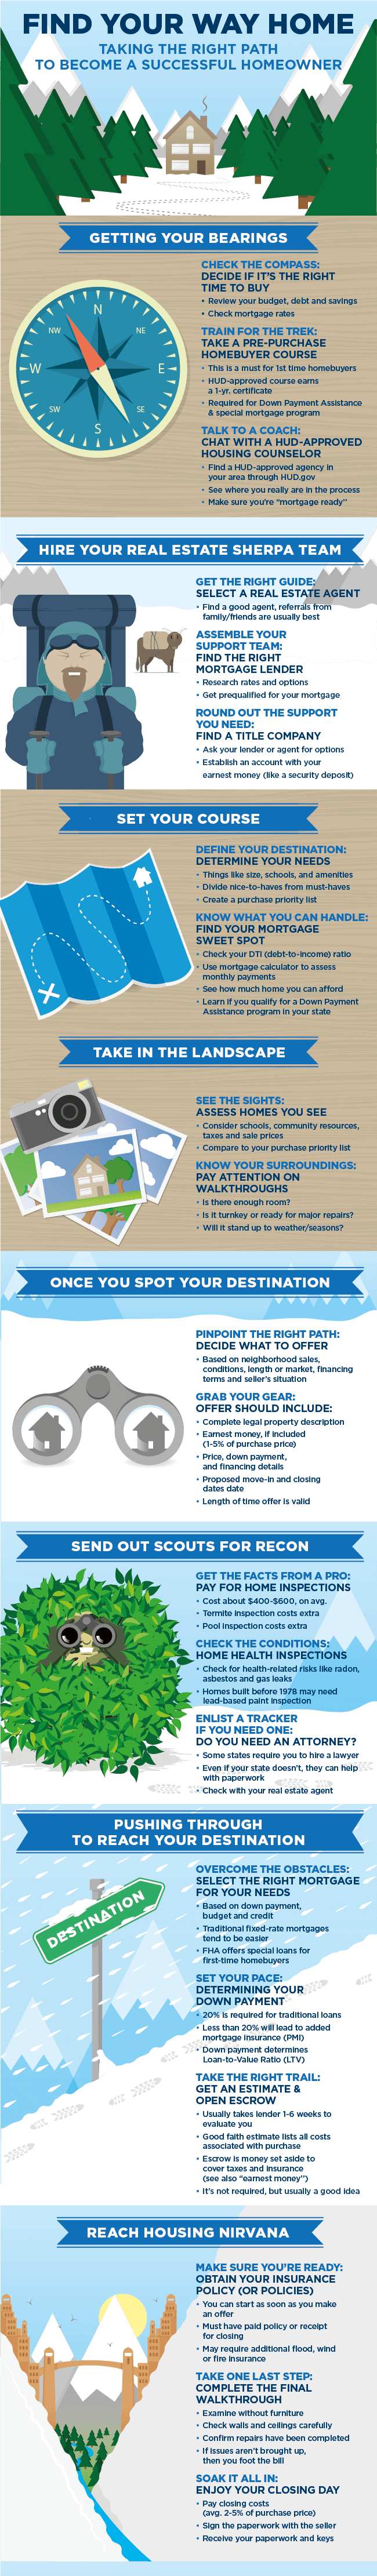 Infographic displaying a step by step walk-through for the home buying process